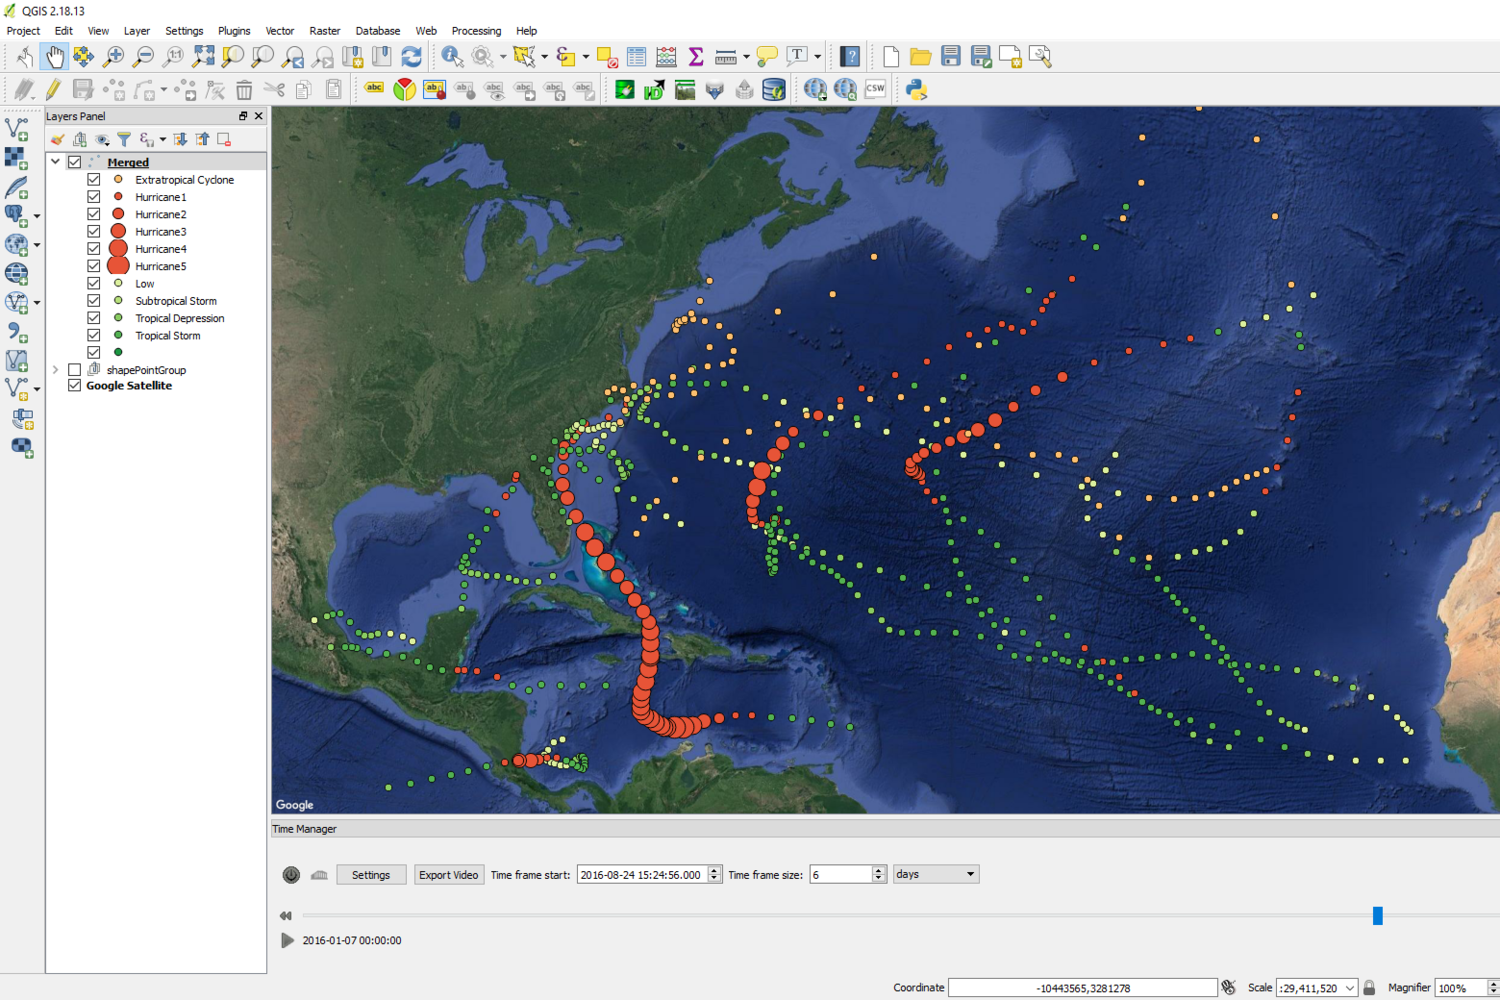 Spatio-Temporal Hurricane Tracking in the Gulf of Mexico with QGIS